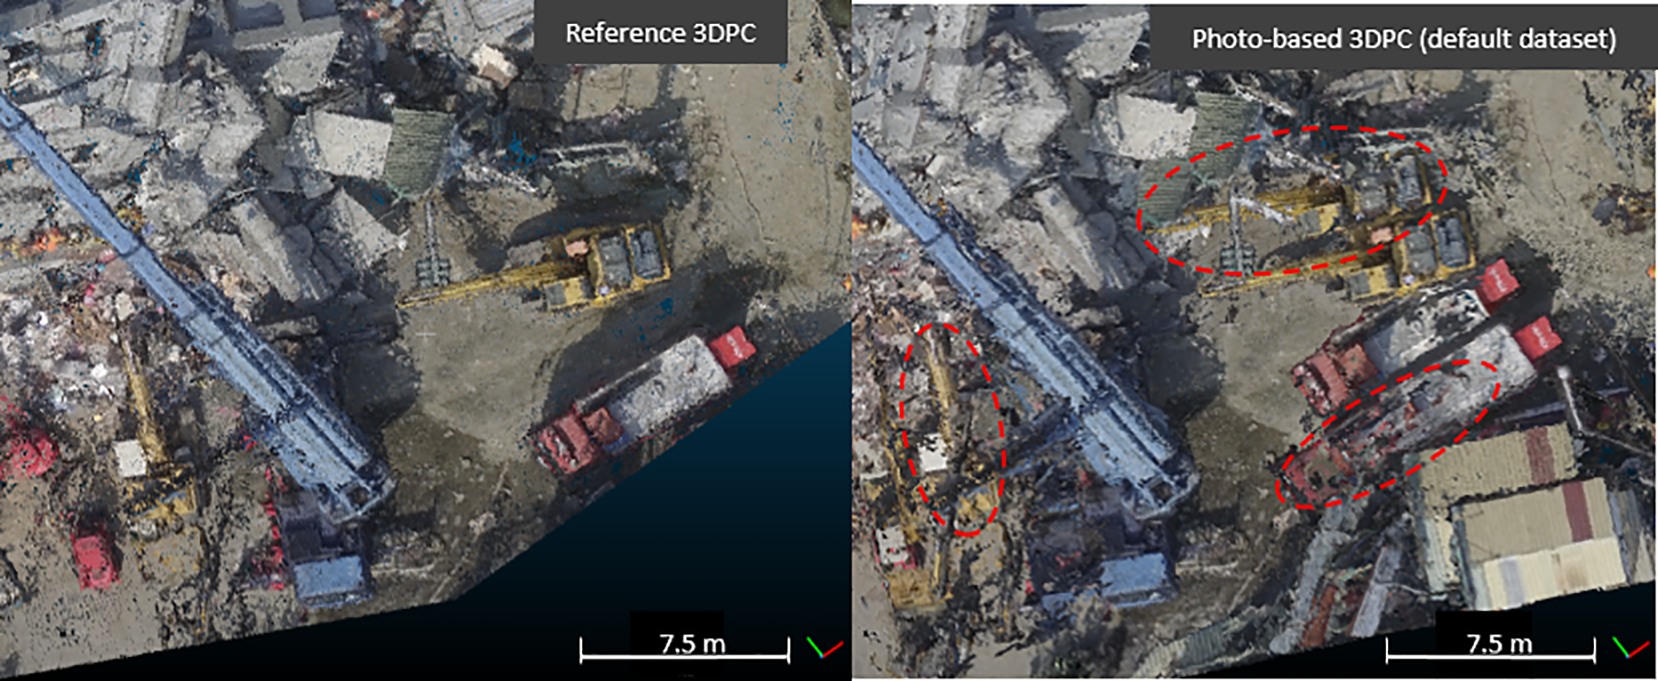 NHESS - Usability of aerial video footage for 3-D scene